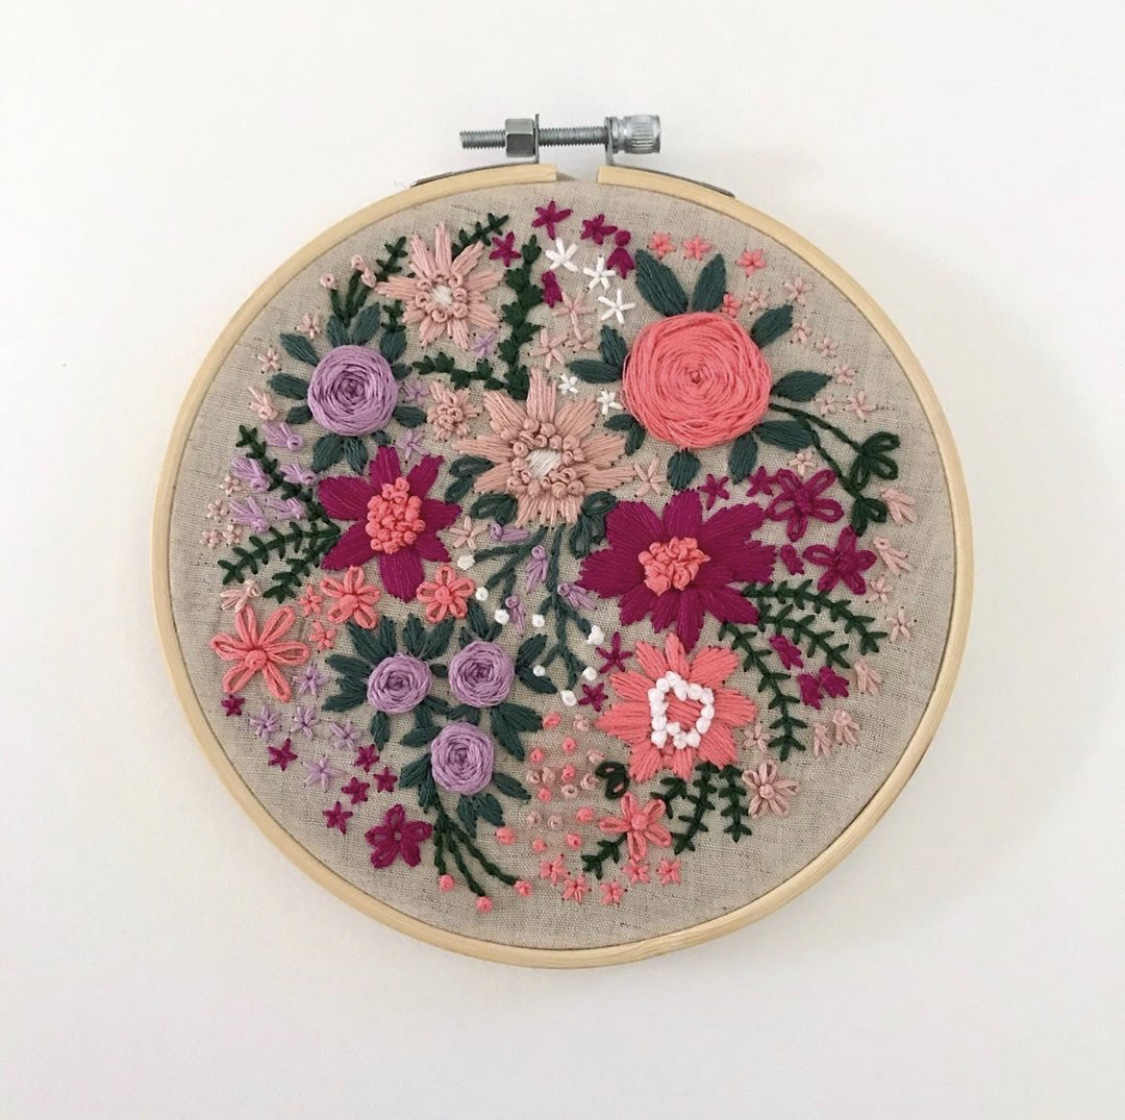 Hand Embroidery Workshops in Sydney